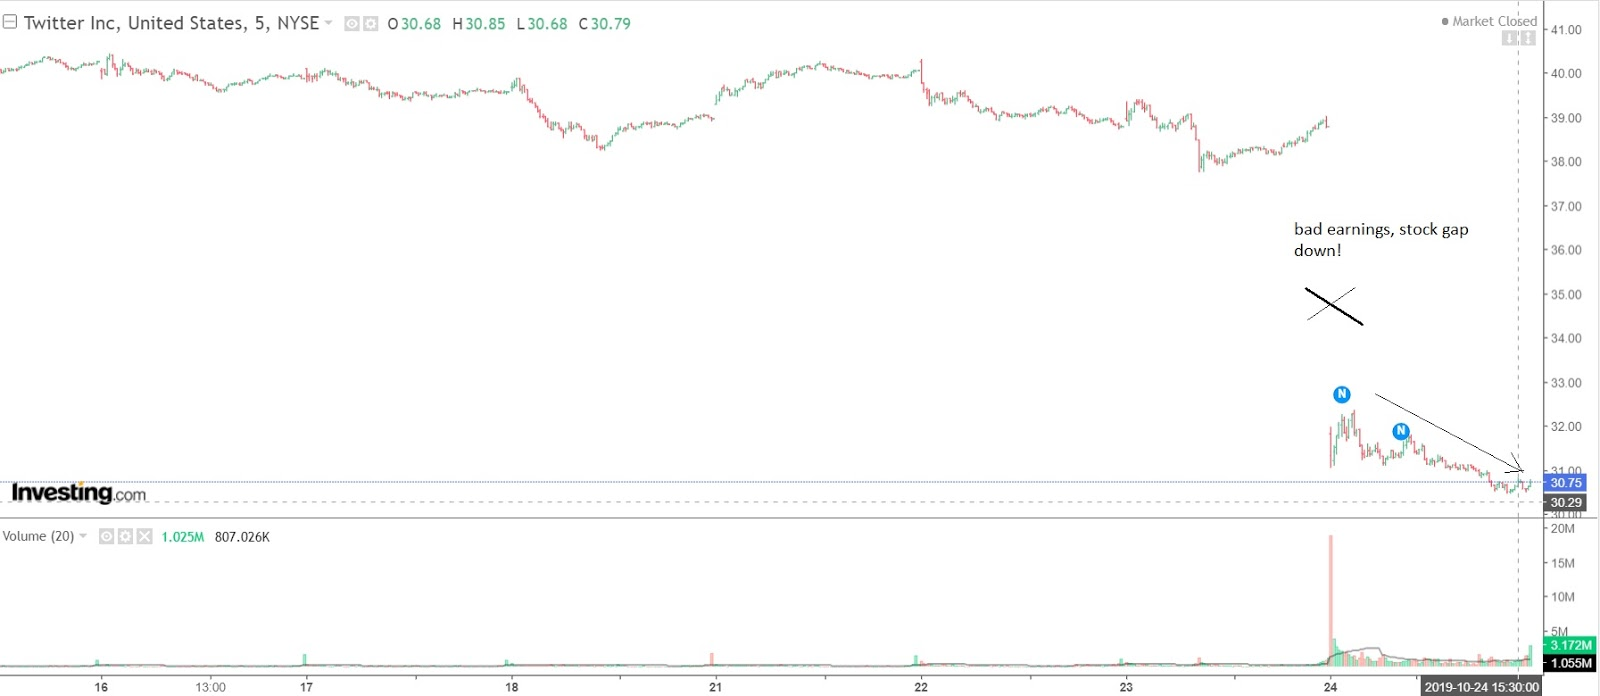 Trading Usa Stocks With Ron K Twitter Shorted And Profited